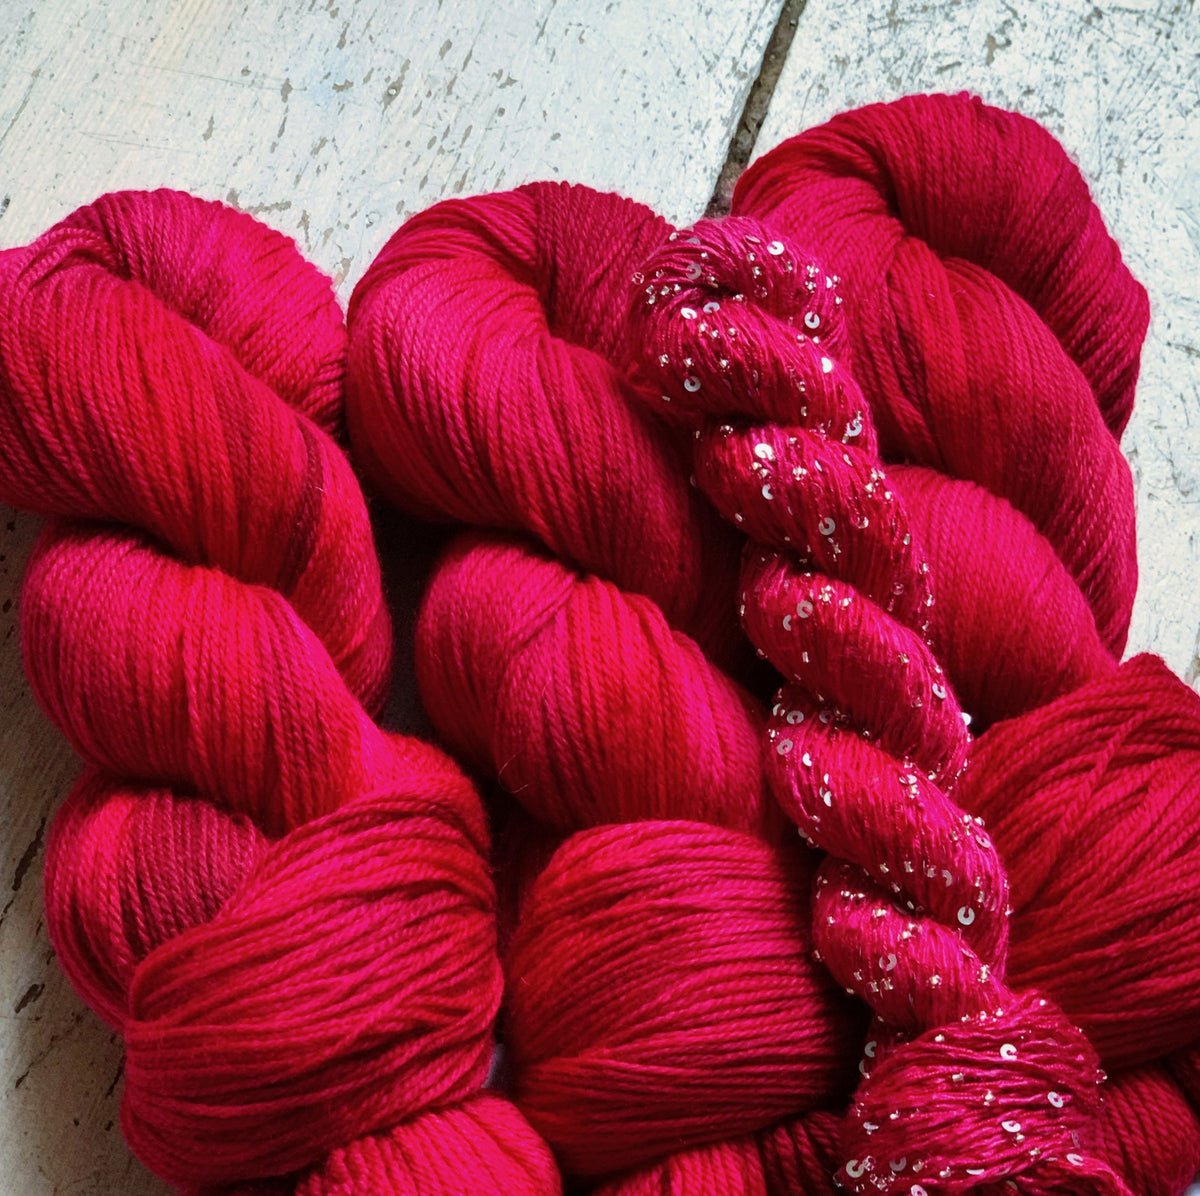 Merino Cloud Artyarns Yarn H7 Maraschino